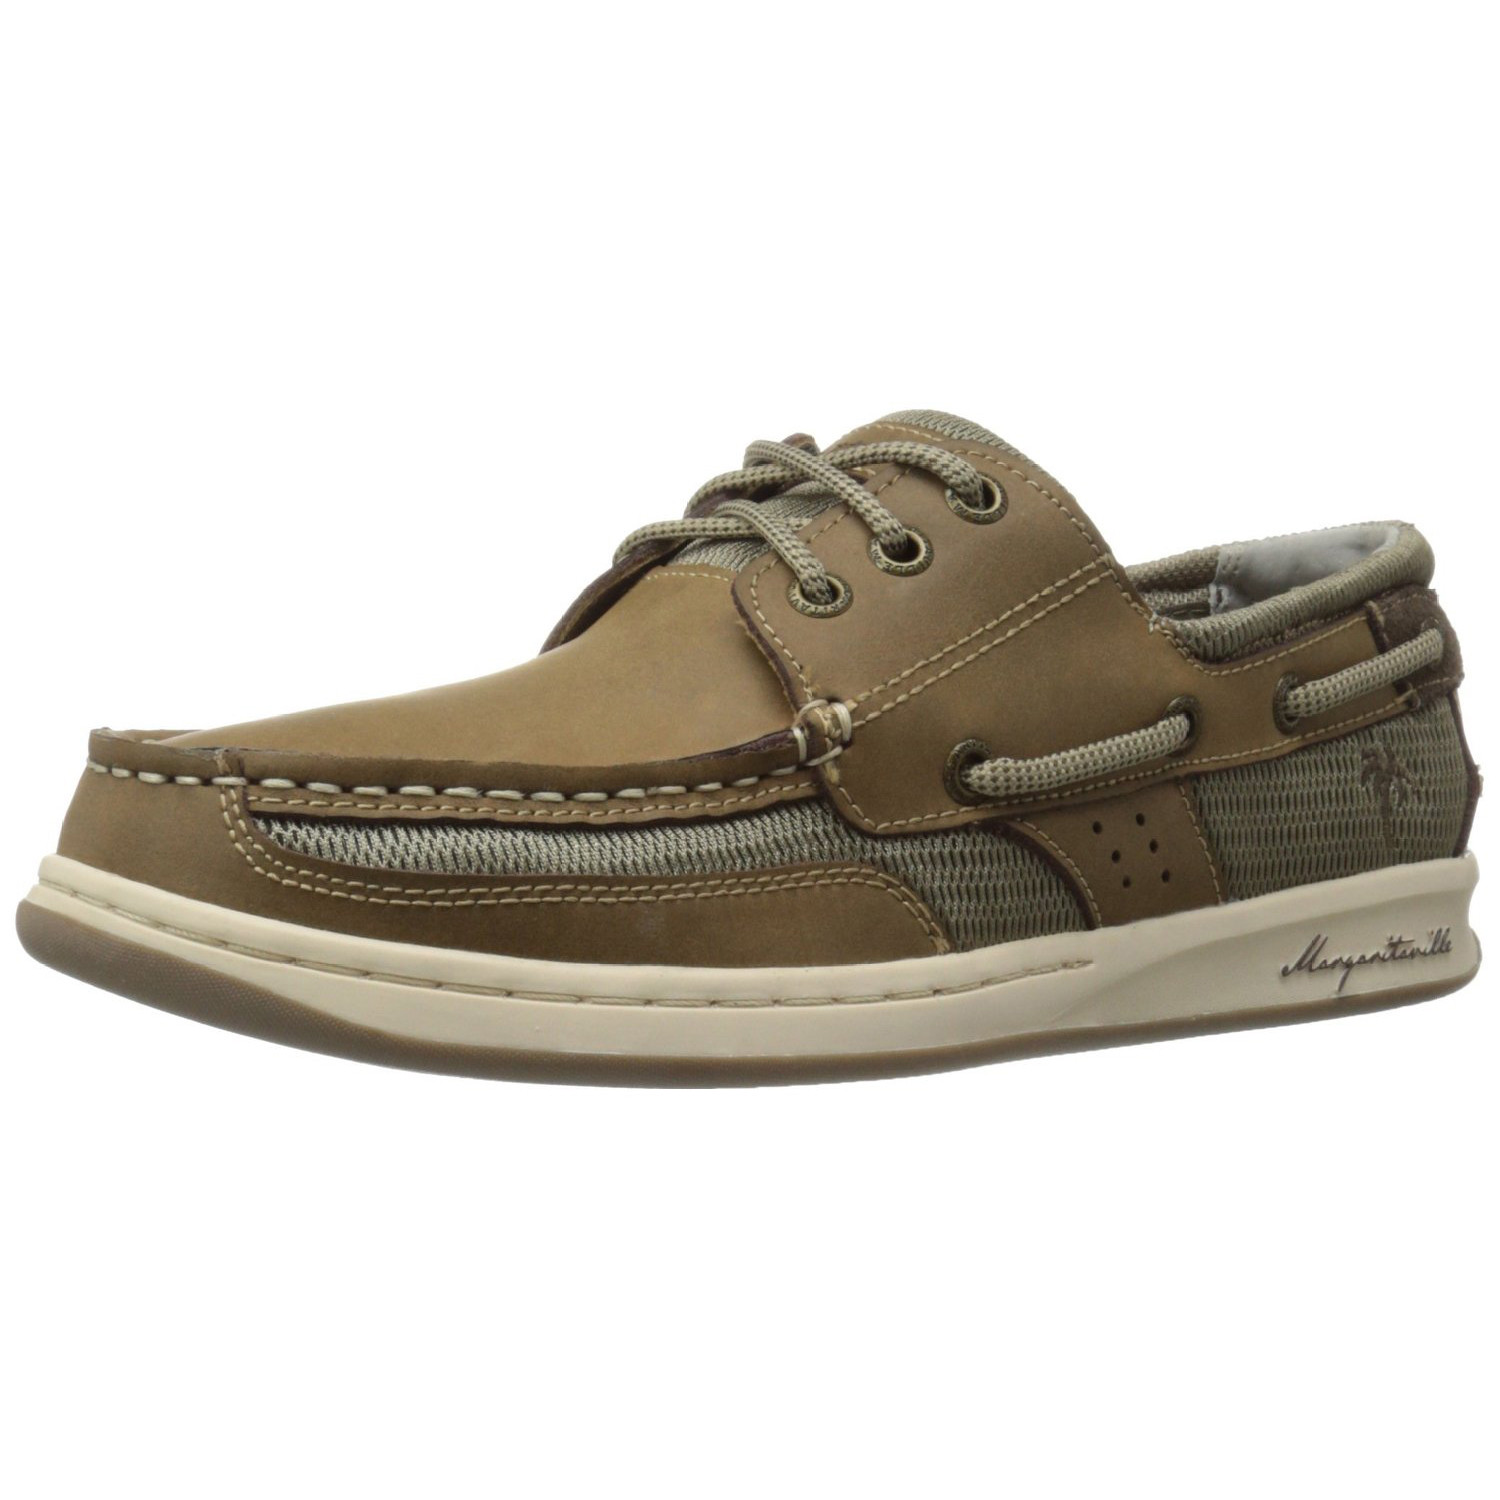 DESCRIPTION. The Margaritaville Anchor boat shoe is the epitome of casual comfort! With deck shoe styling and great cushioning, your feet will feel relaxed after a long day in the sun/5(72).